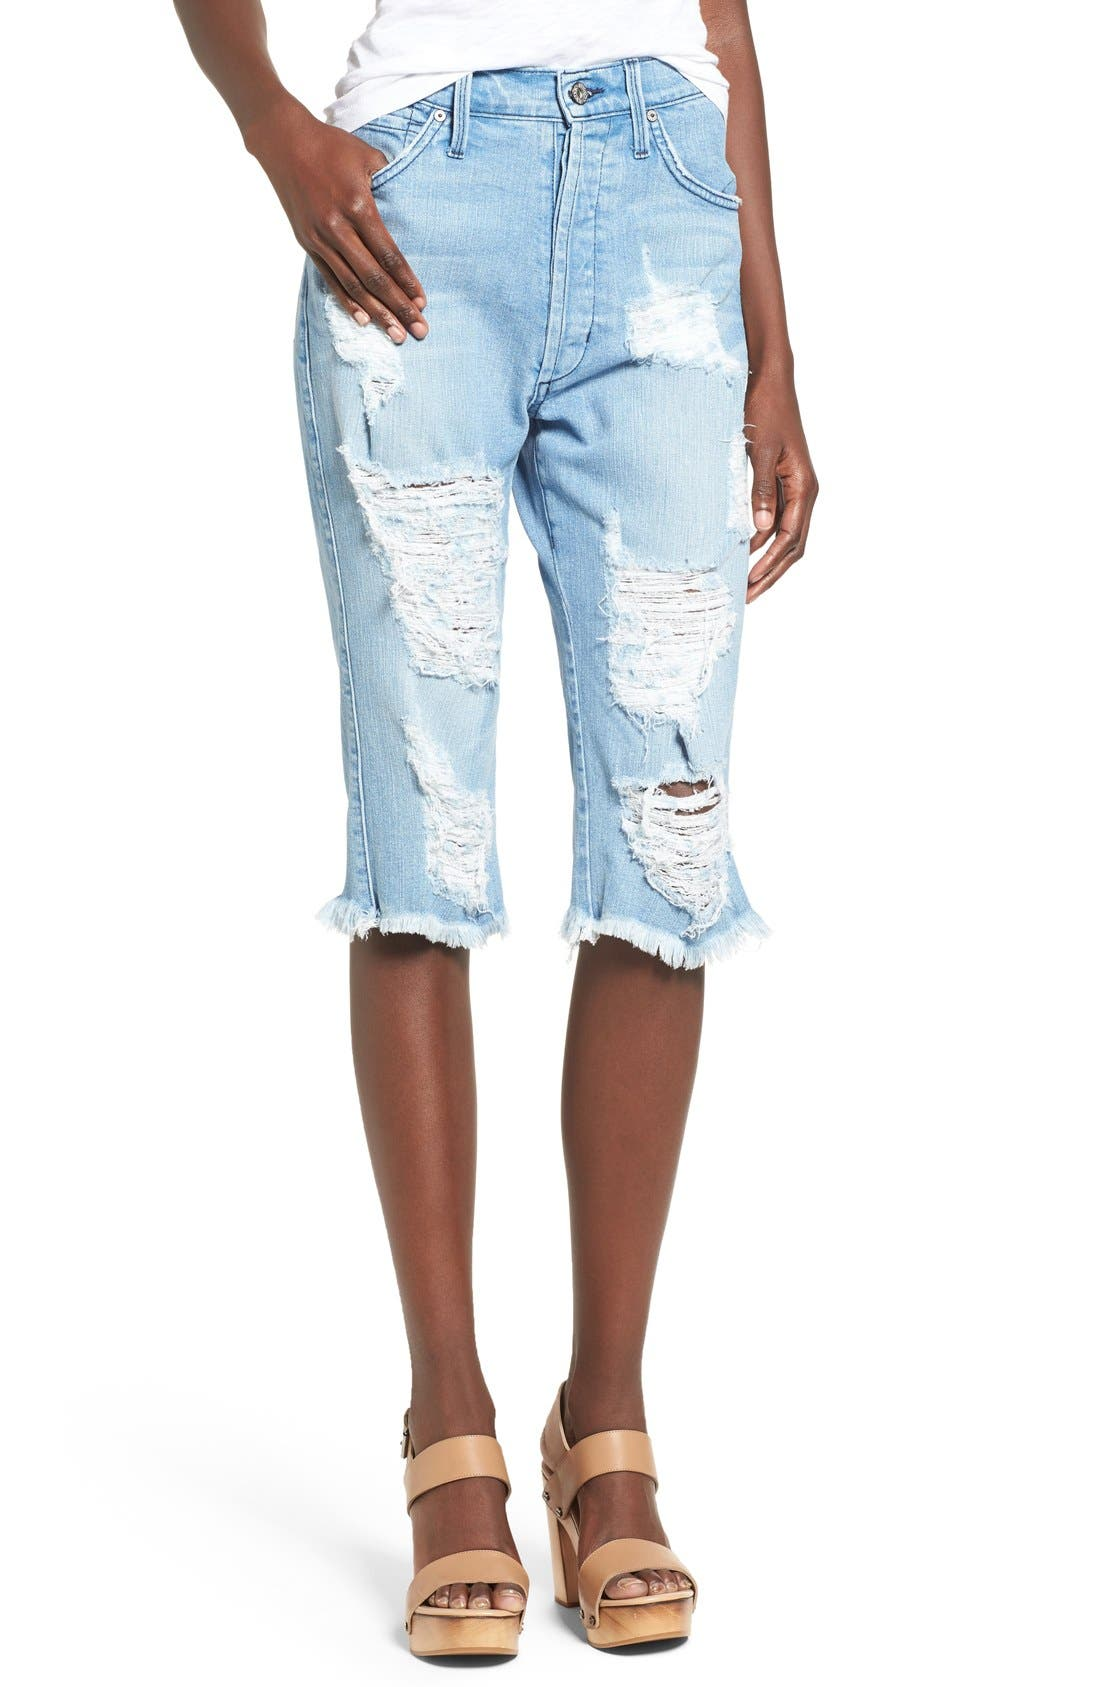 Alternate Image 1 Selected - James Jeans Distressed Bermuda Shorts (Joy Ride)